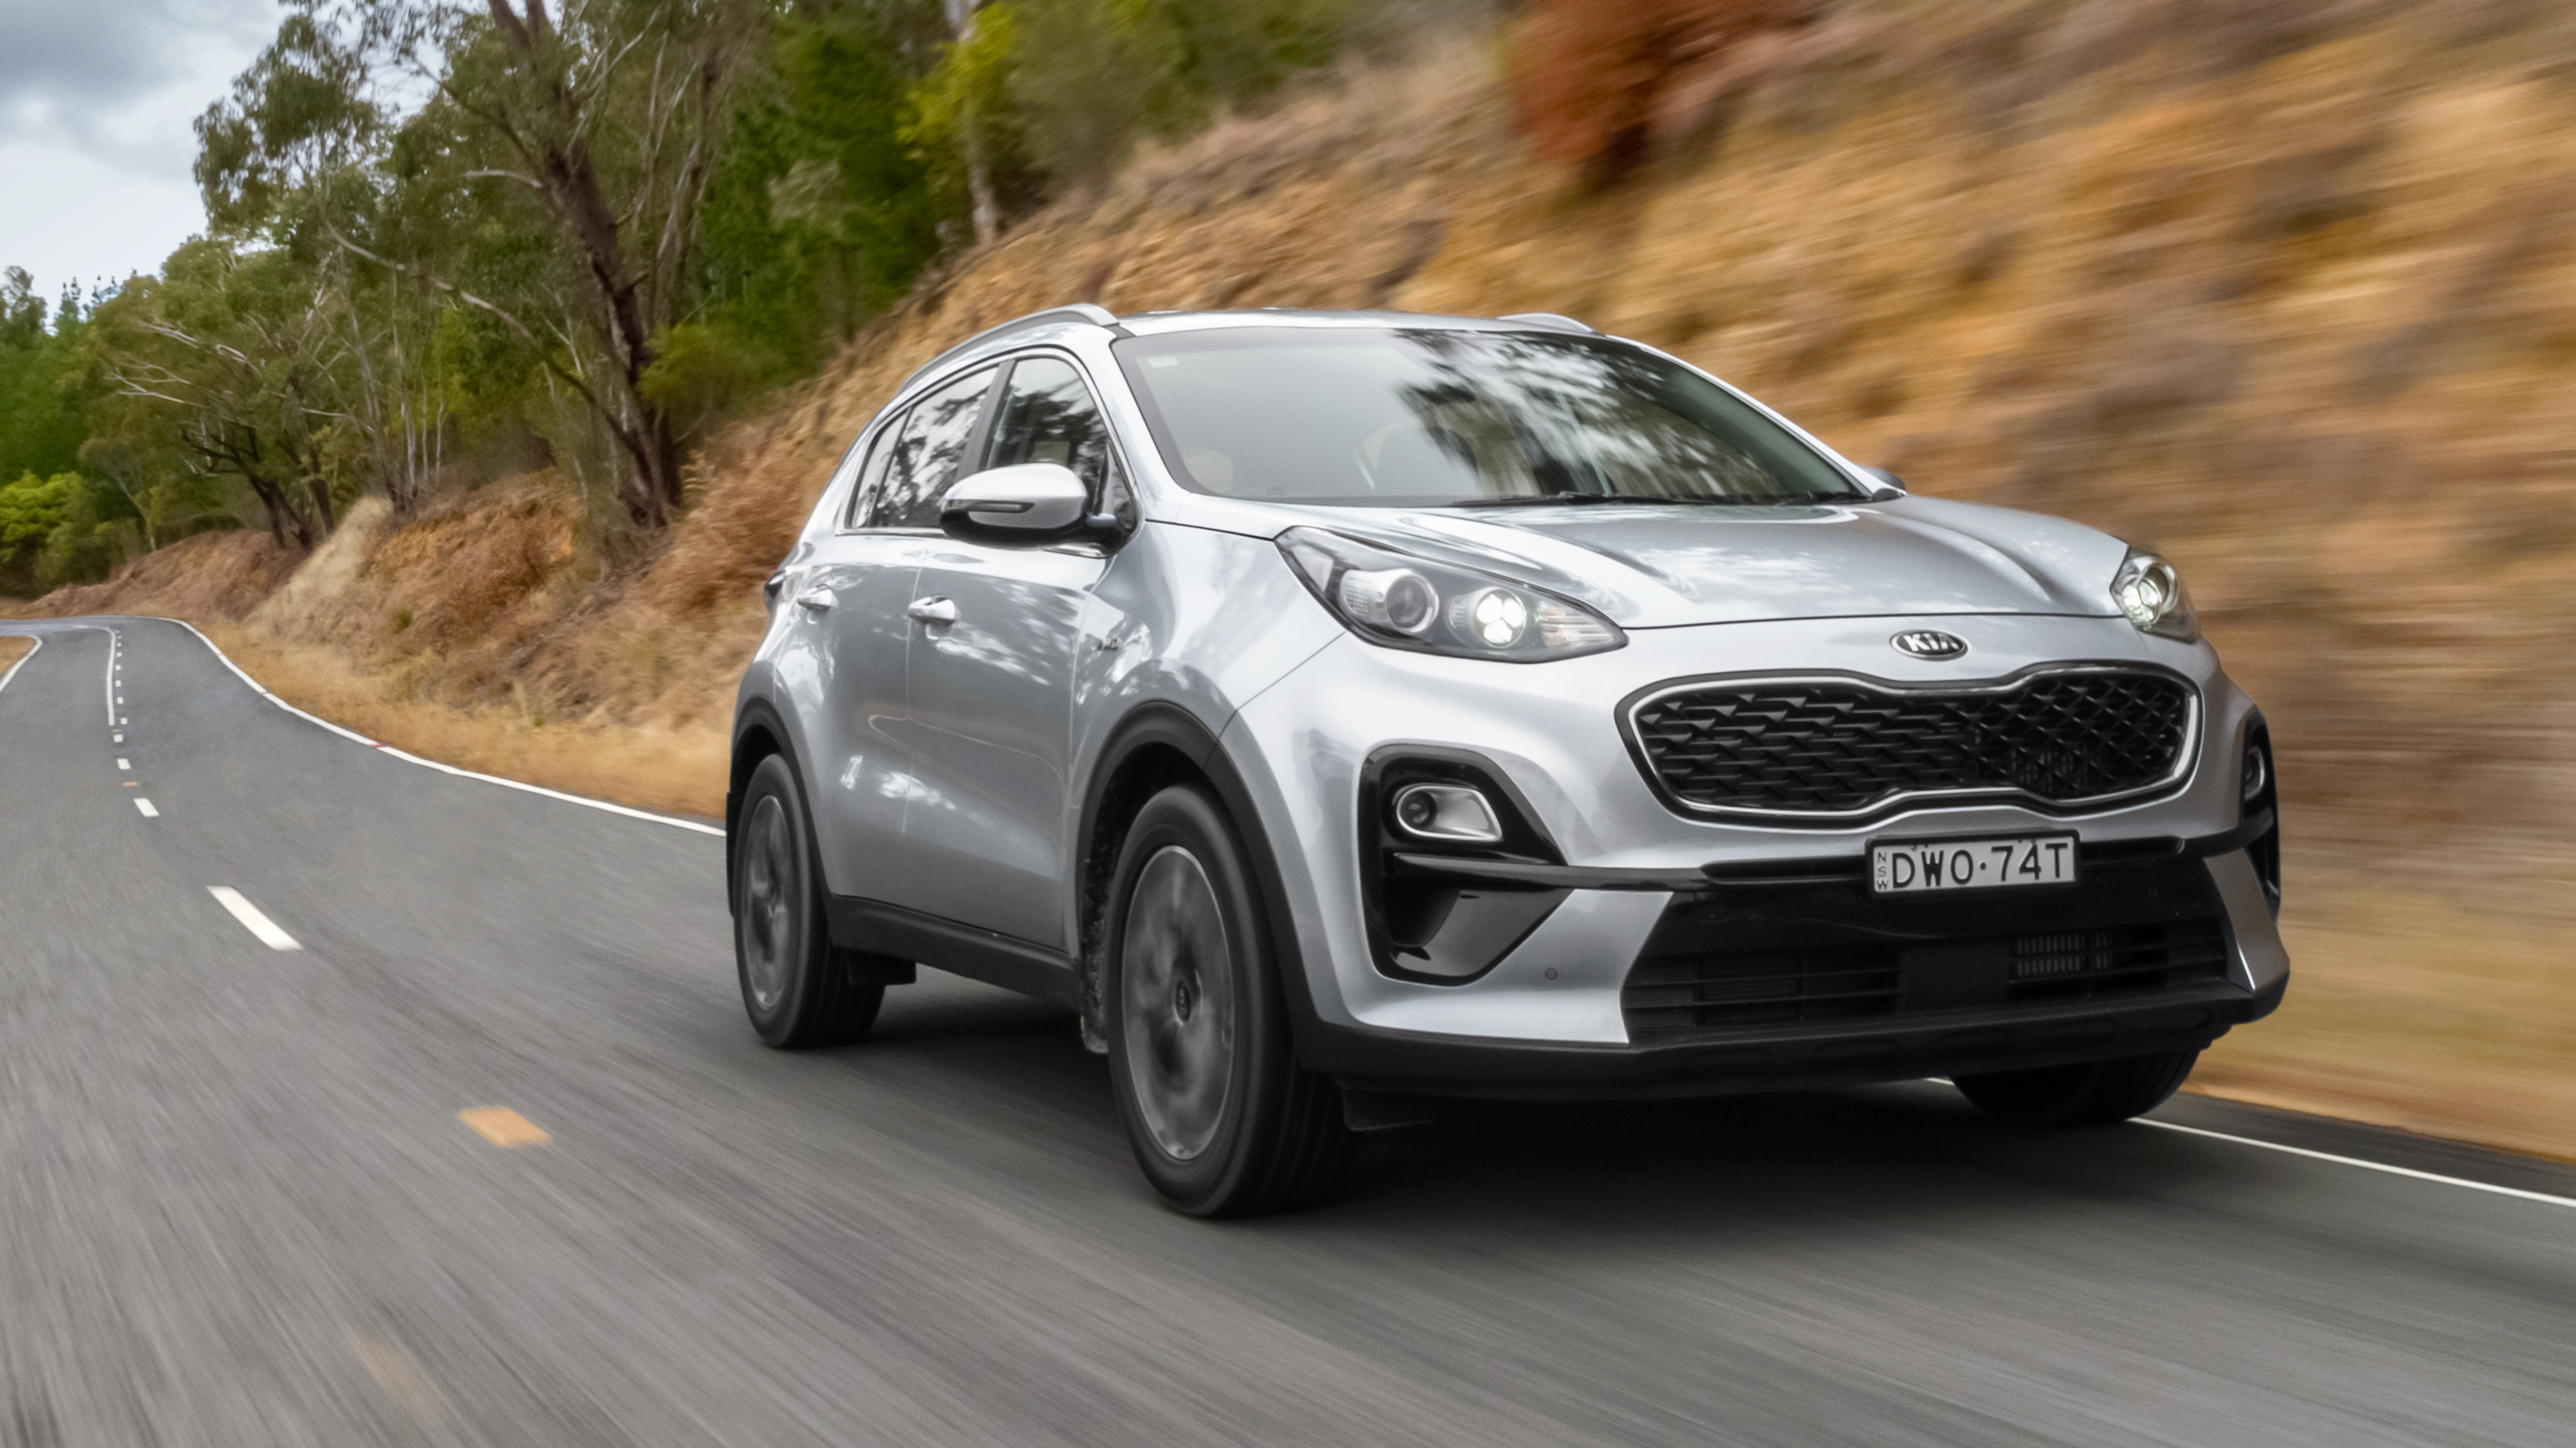 2019 Kia Sportage: Upgraded Design And New Hybrid System >> 2019 Kia Sportage Review Caradvice